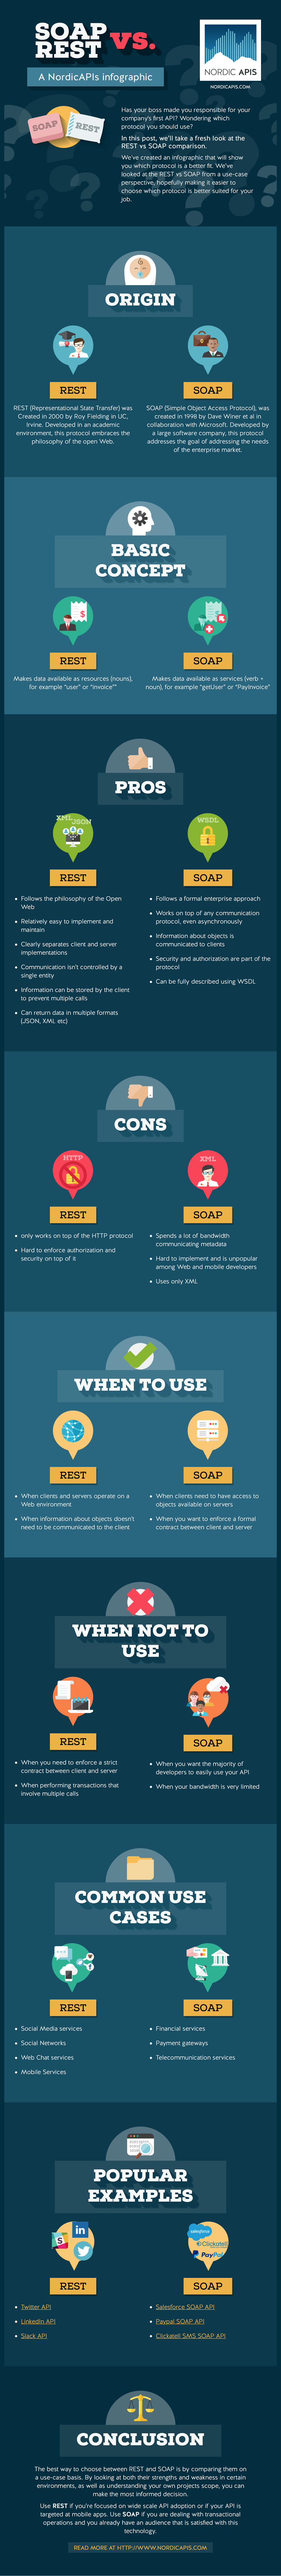 soap_vs_rest_infographics